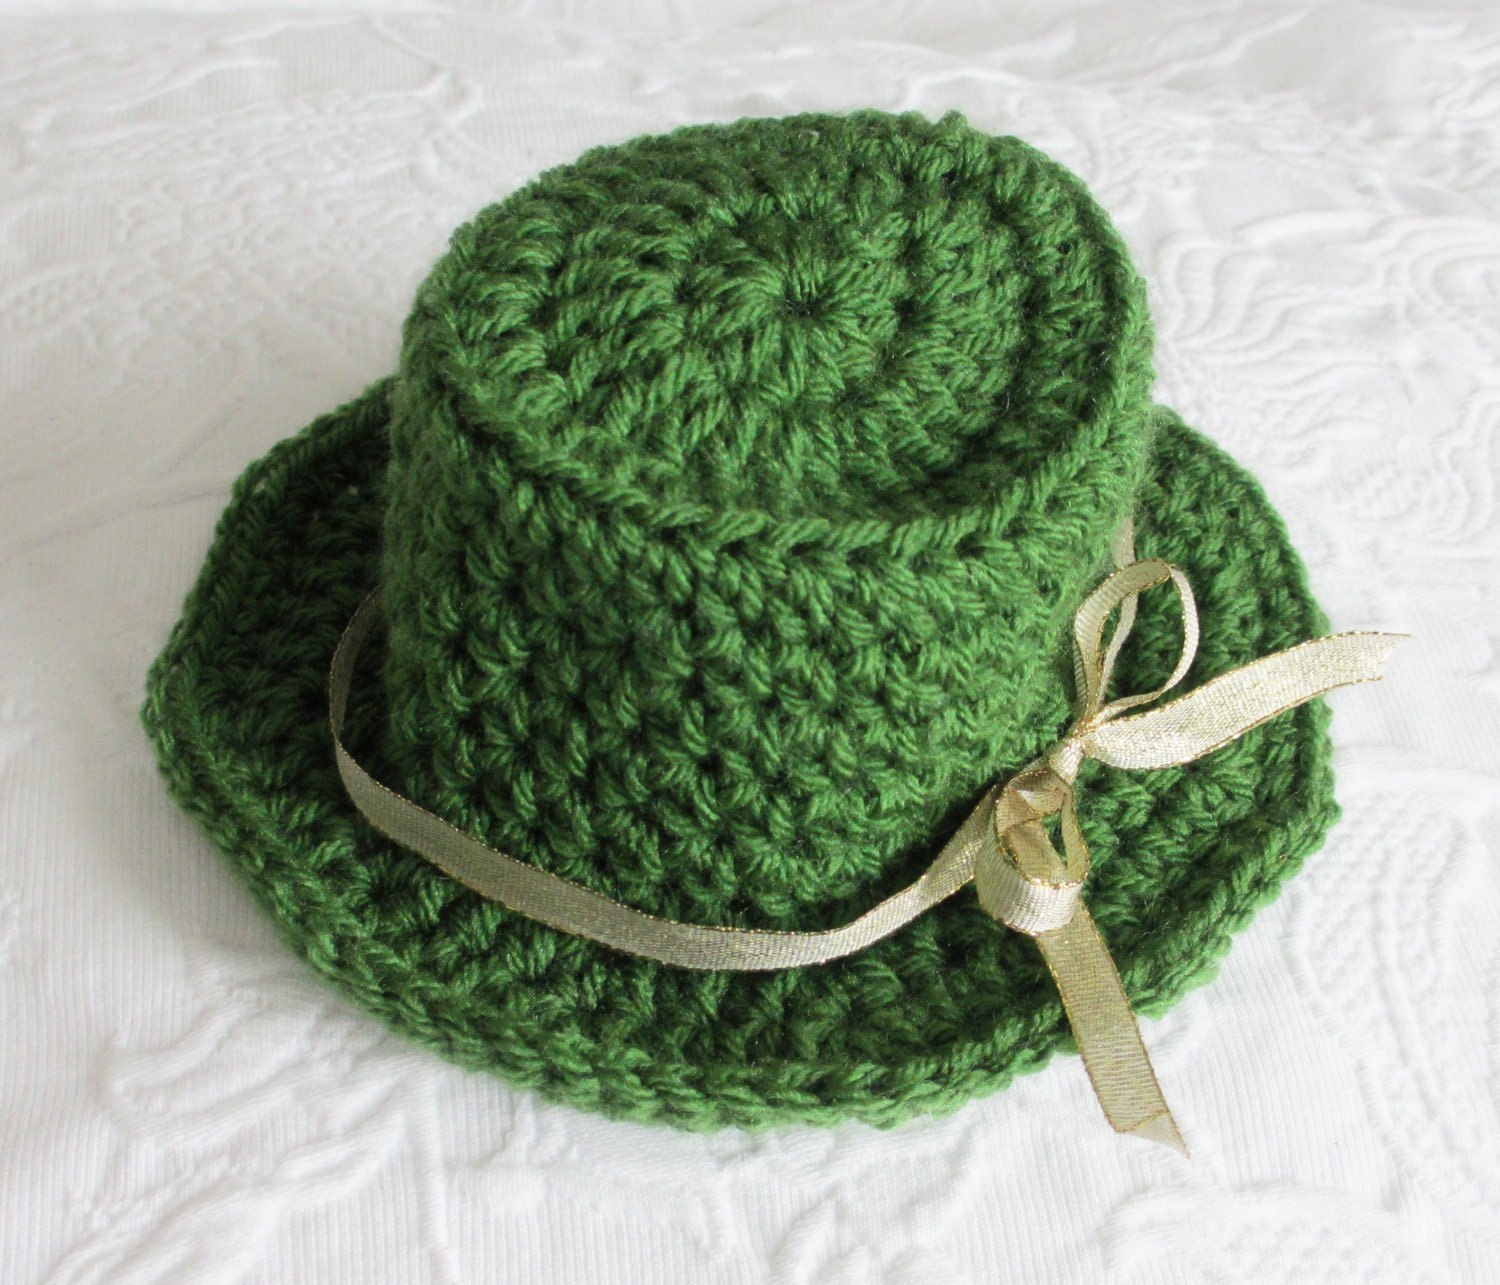 Crochet Pattern Top Hat : CURLY TOP CROCHETED HAT PATTERN - Crochet and Knitting ...